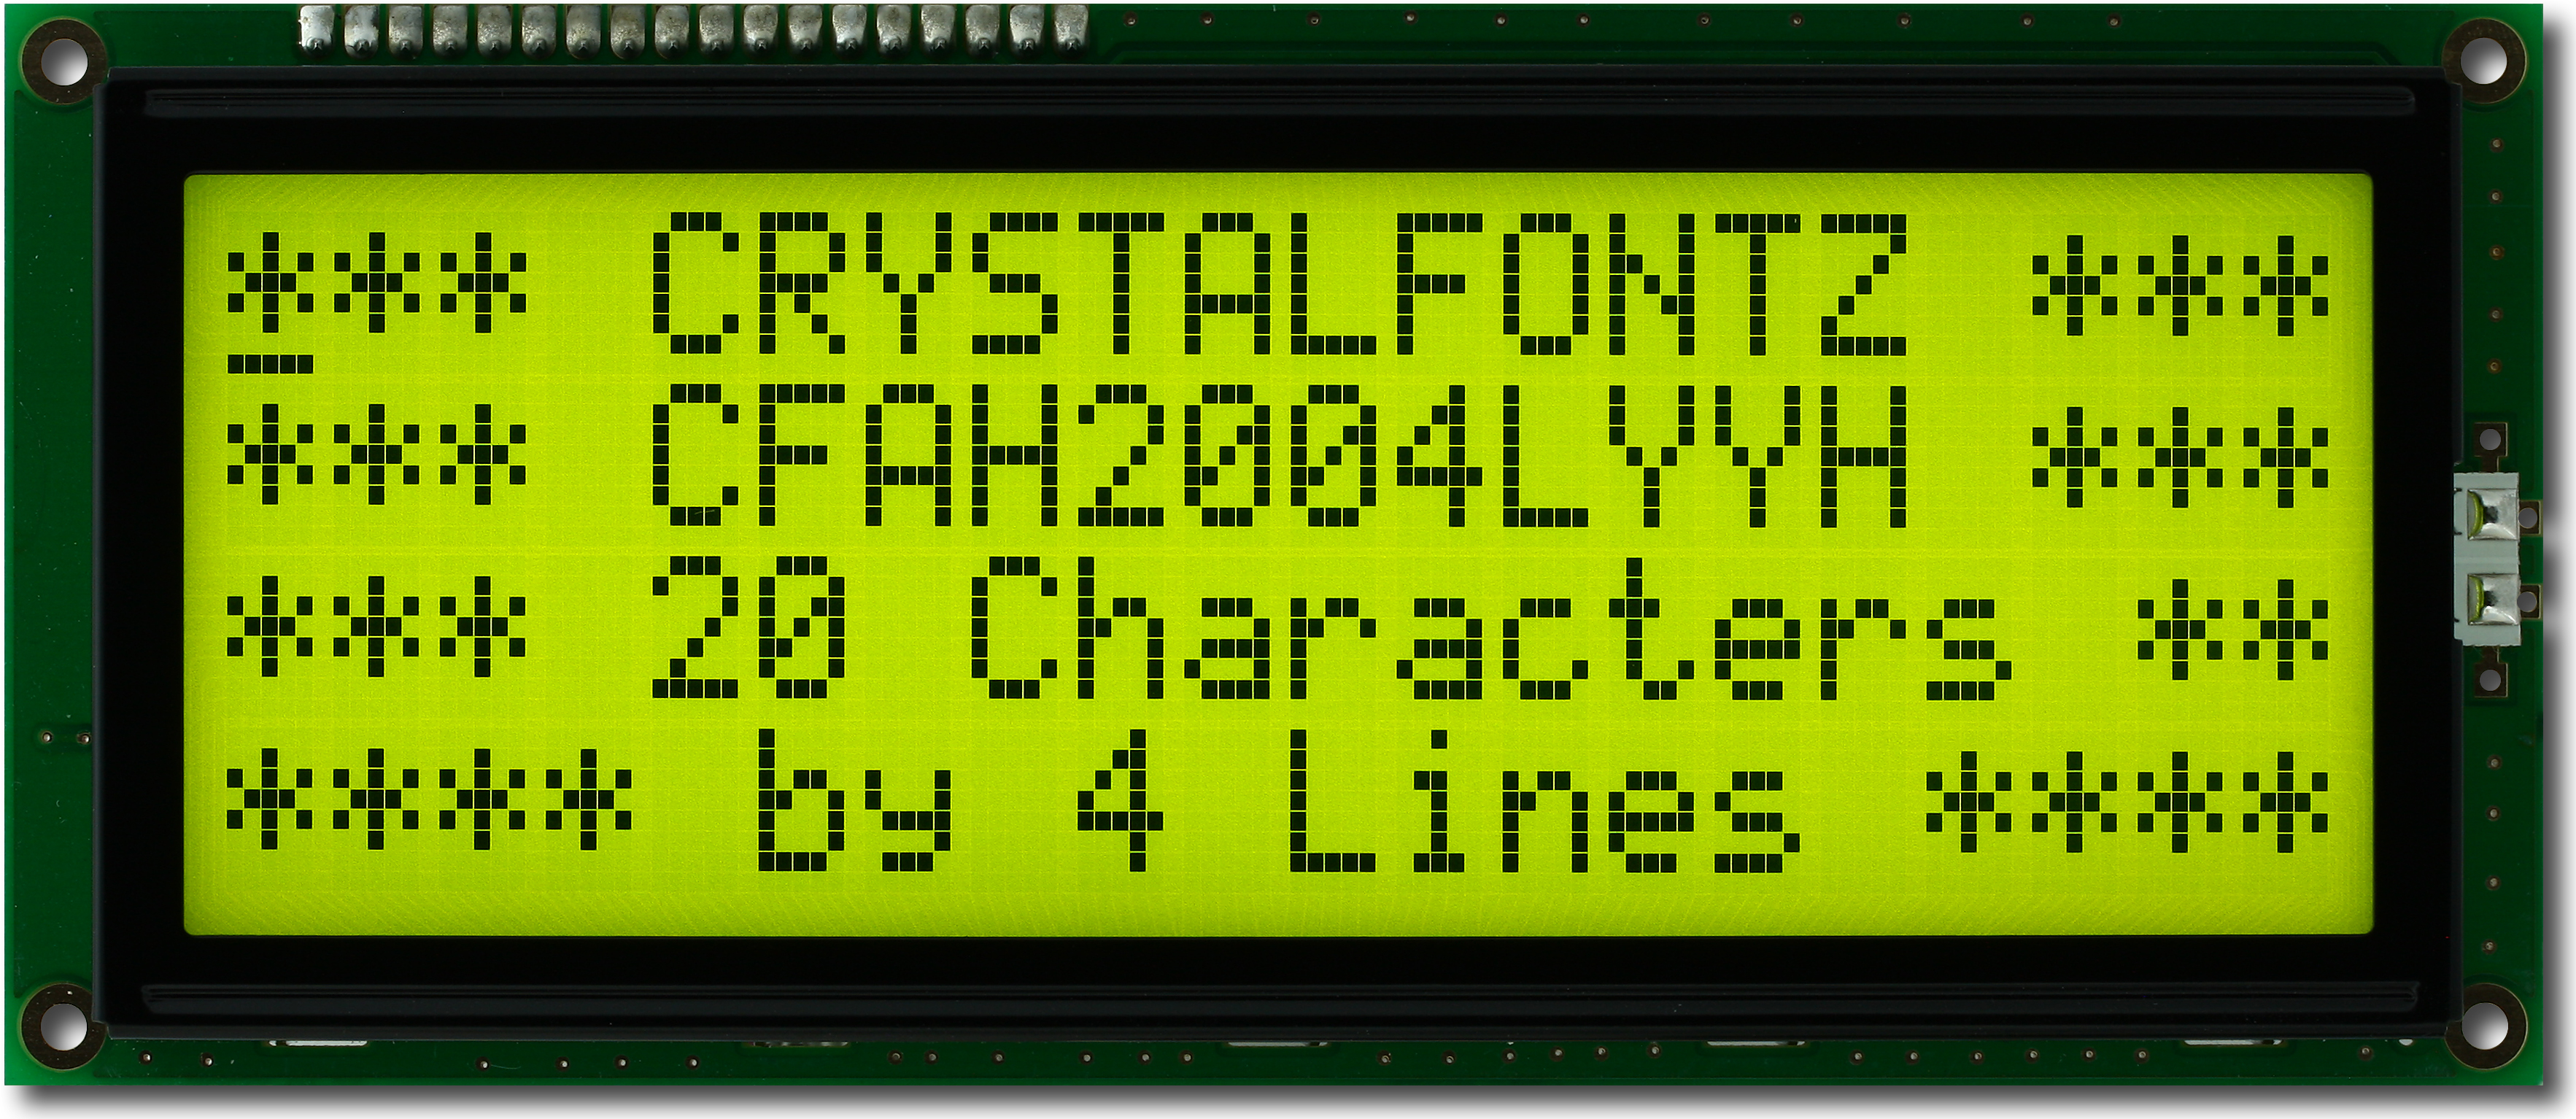 4896862 moreover 2640782 moreover Nhd0216szwby5 P 4214 likewise REDLCD16X2BL further Nhdc12864ggrngbw P 665. on character lcd displays part 1